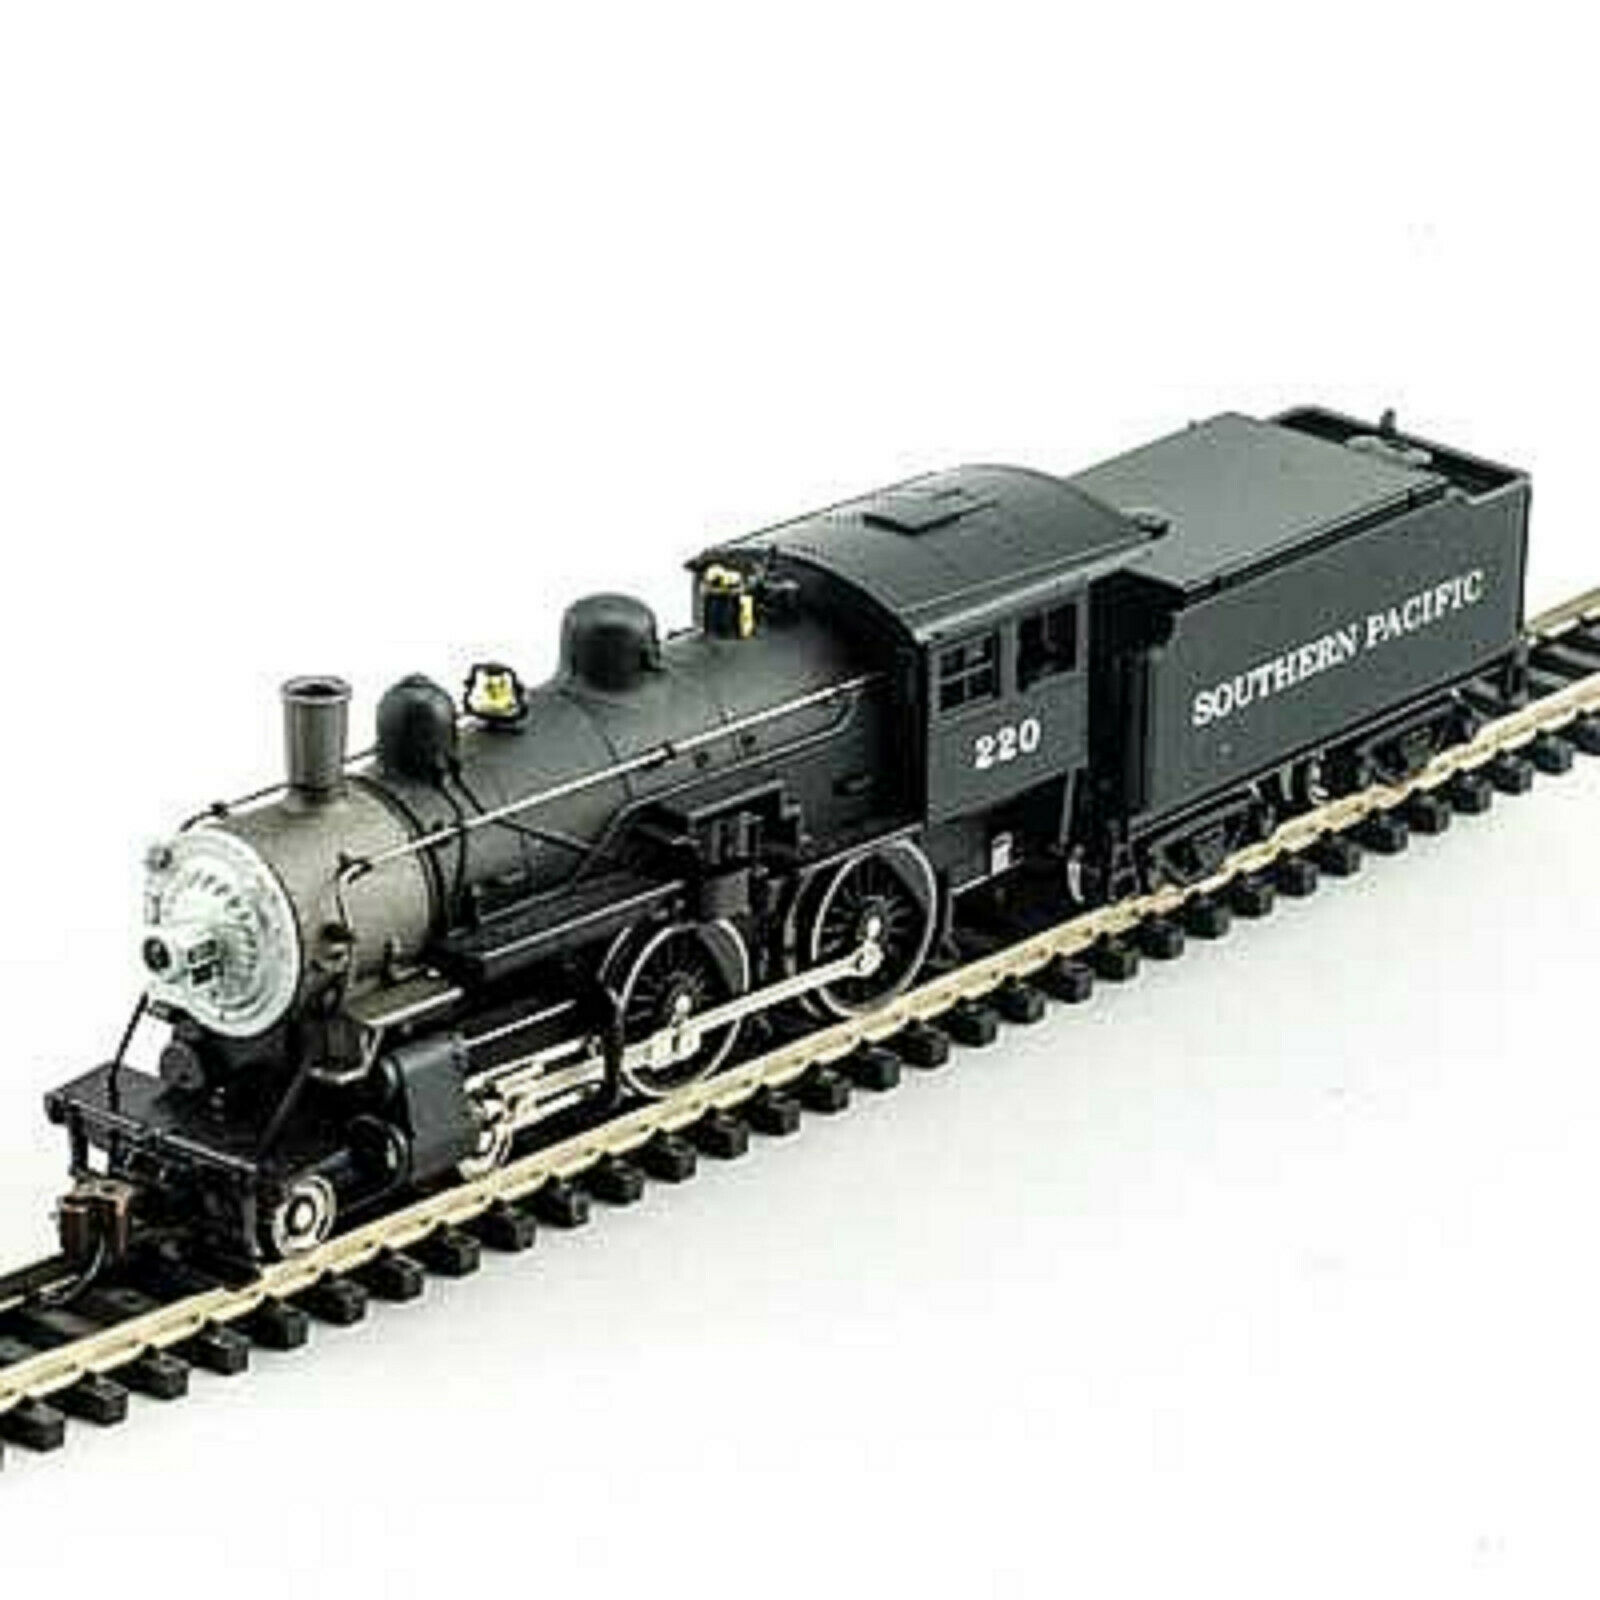 MODEL POWER 87632 N SCALE SCALE SCALE Southern Pacific STEAM 4-4-0